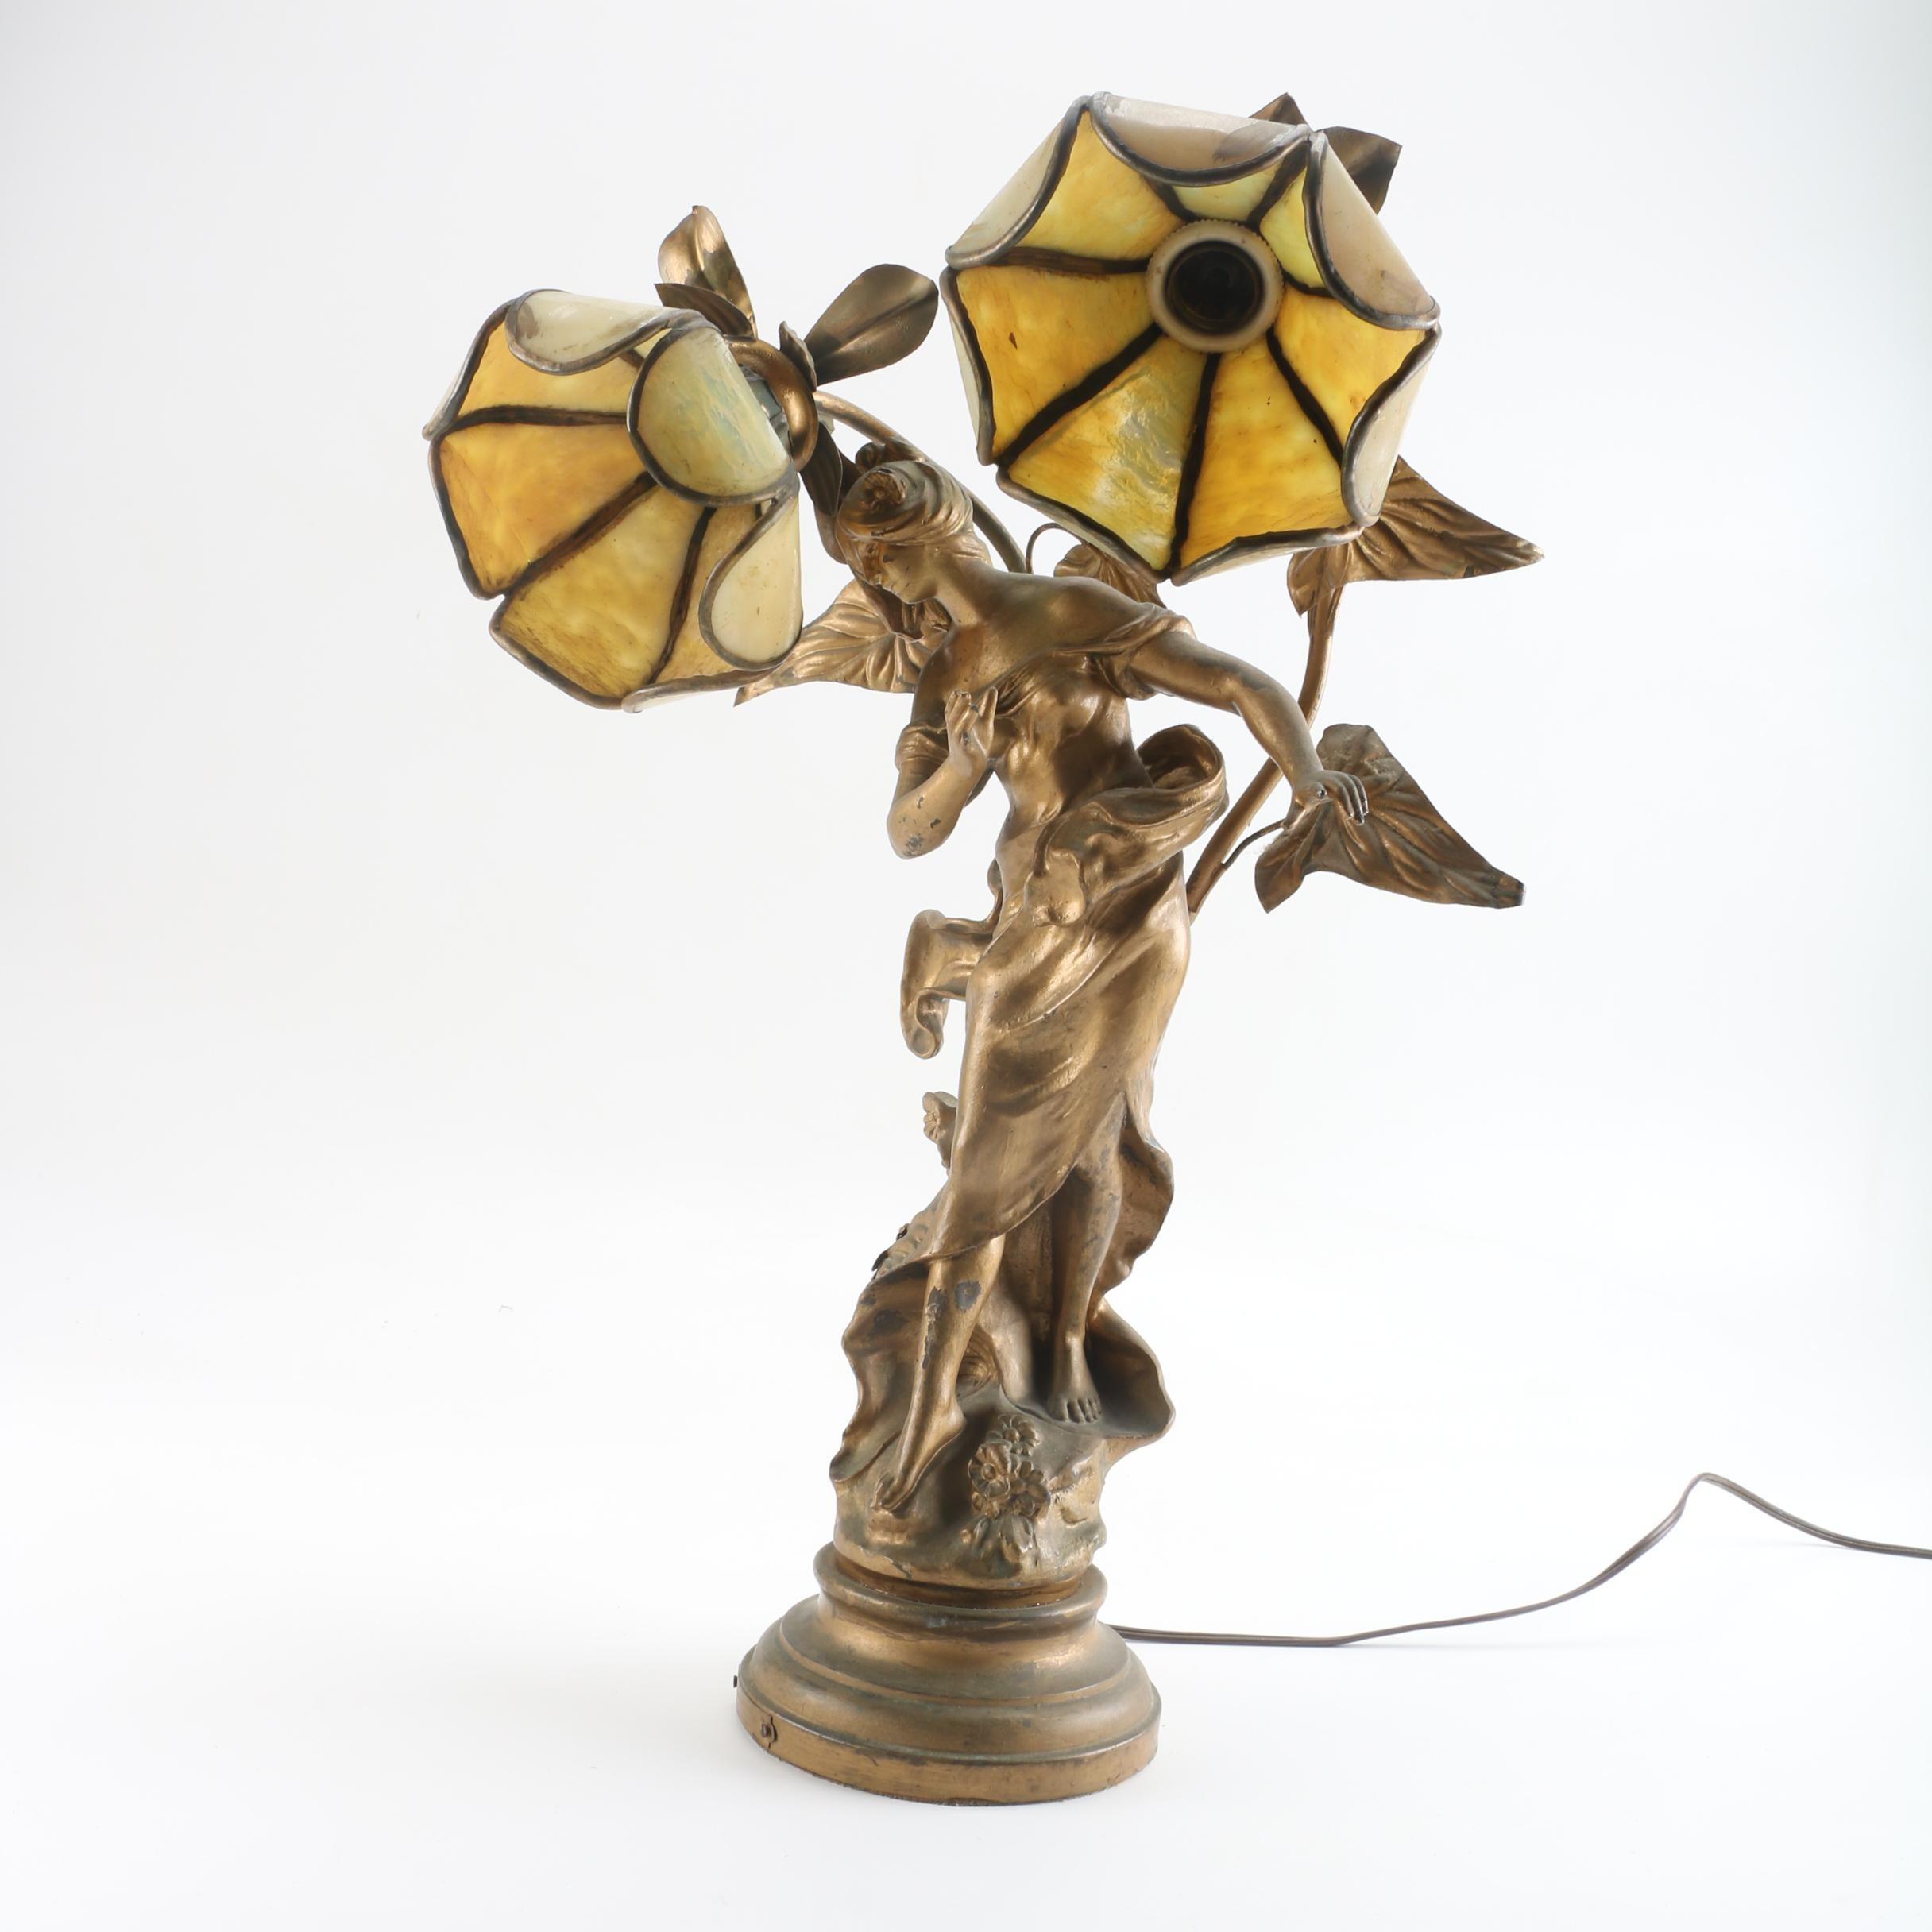 Early 20th Century Art Nouveau Figural Table Lamp with Stained Glass Shades